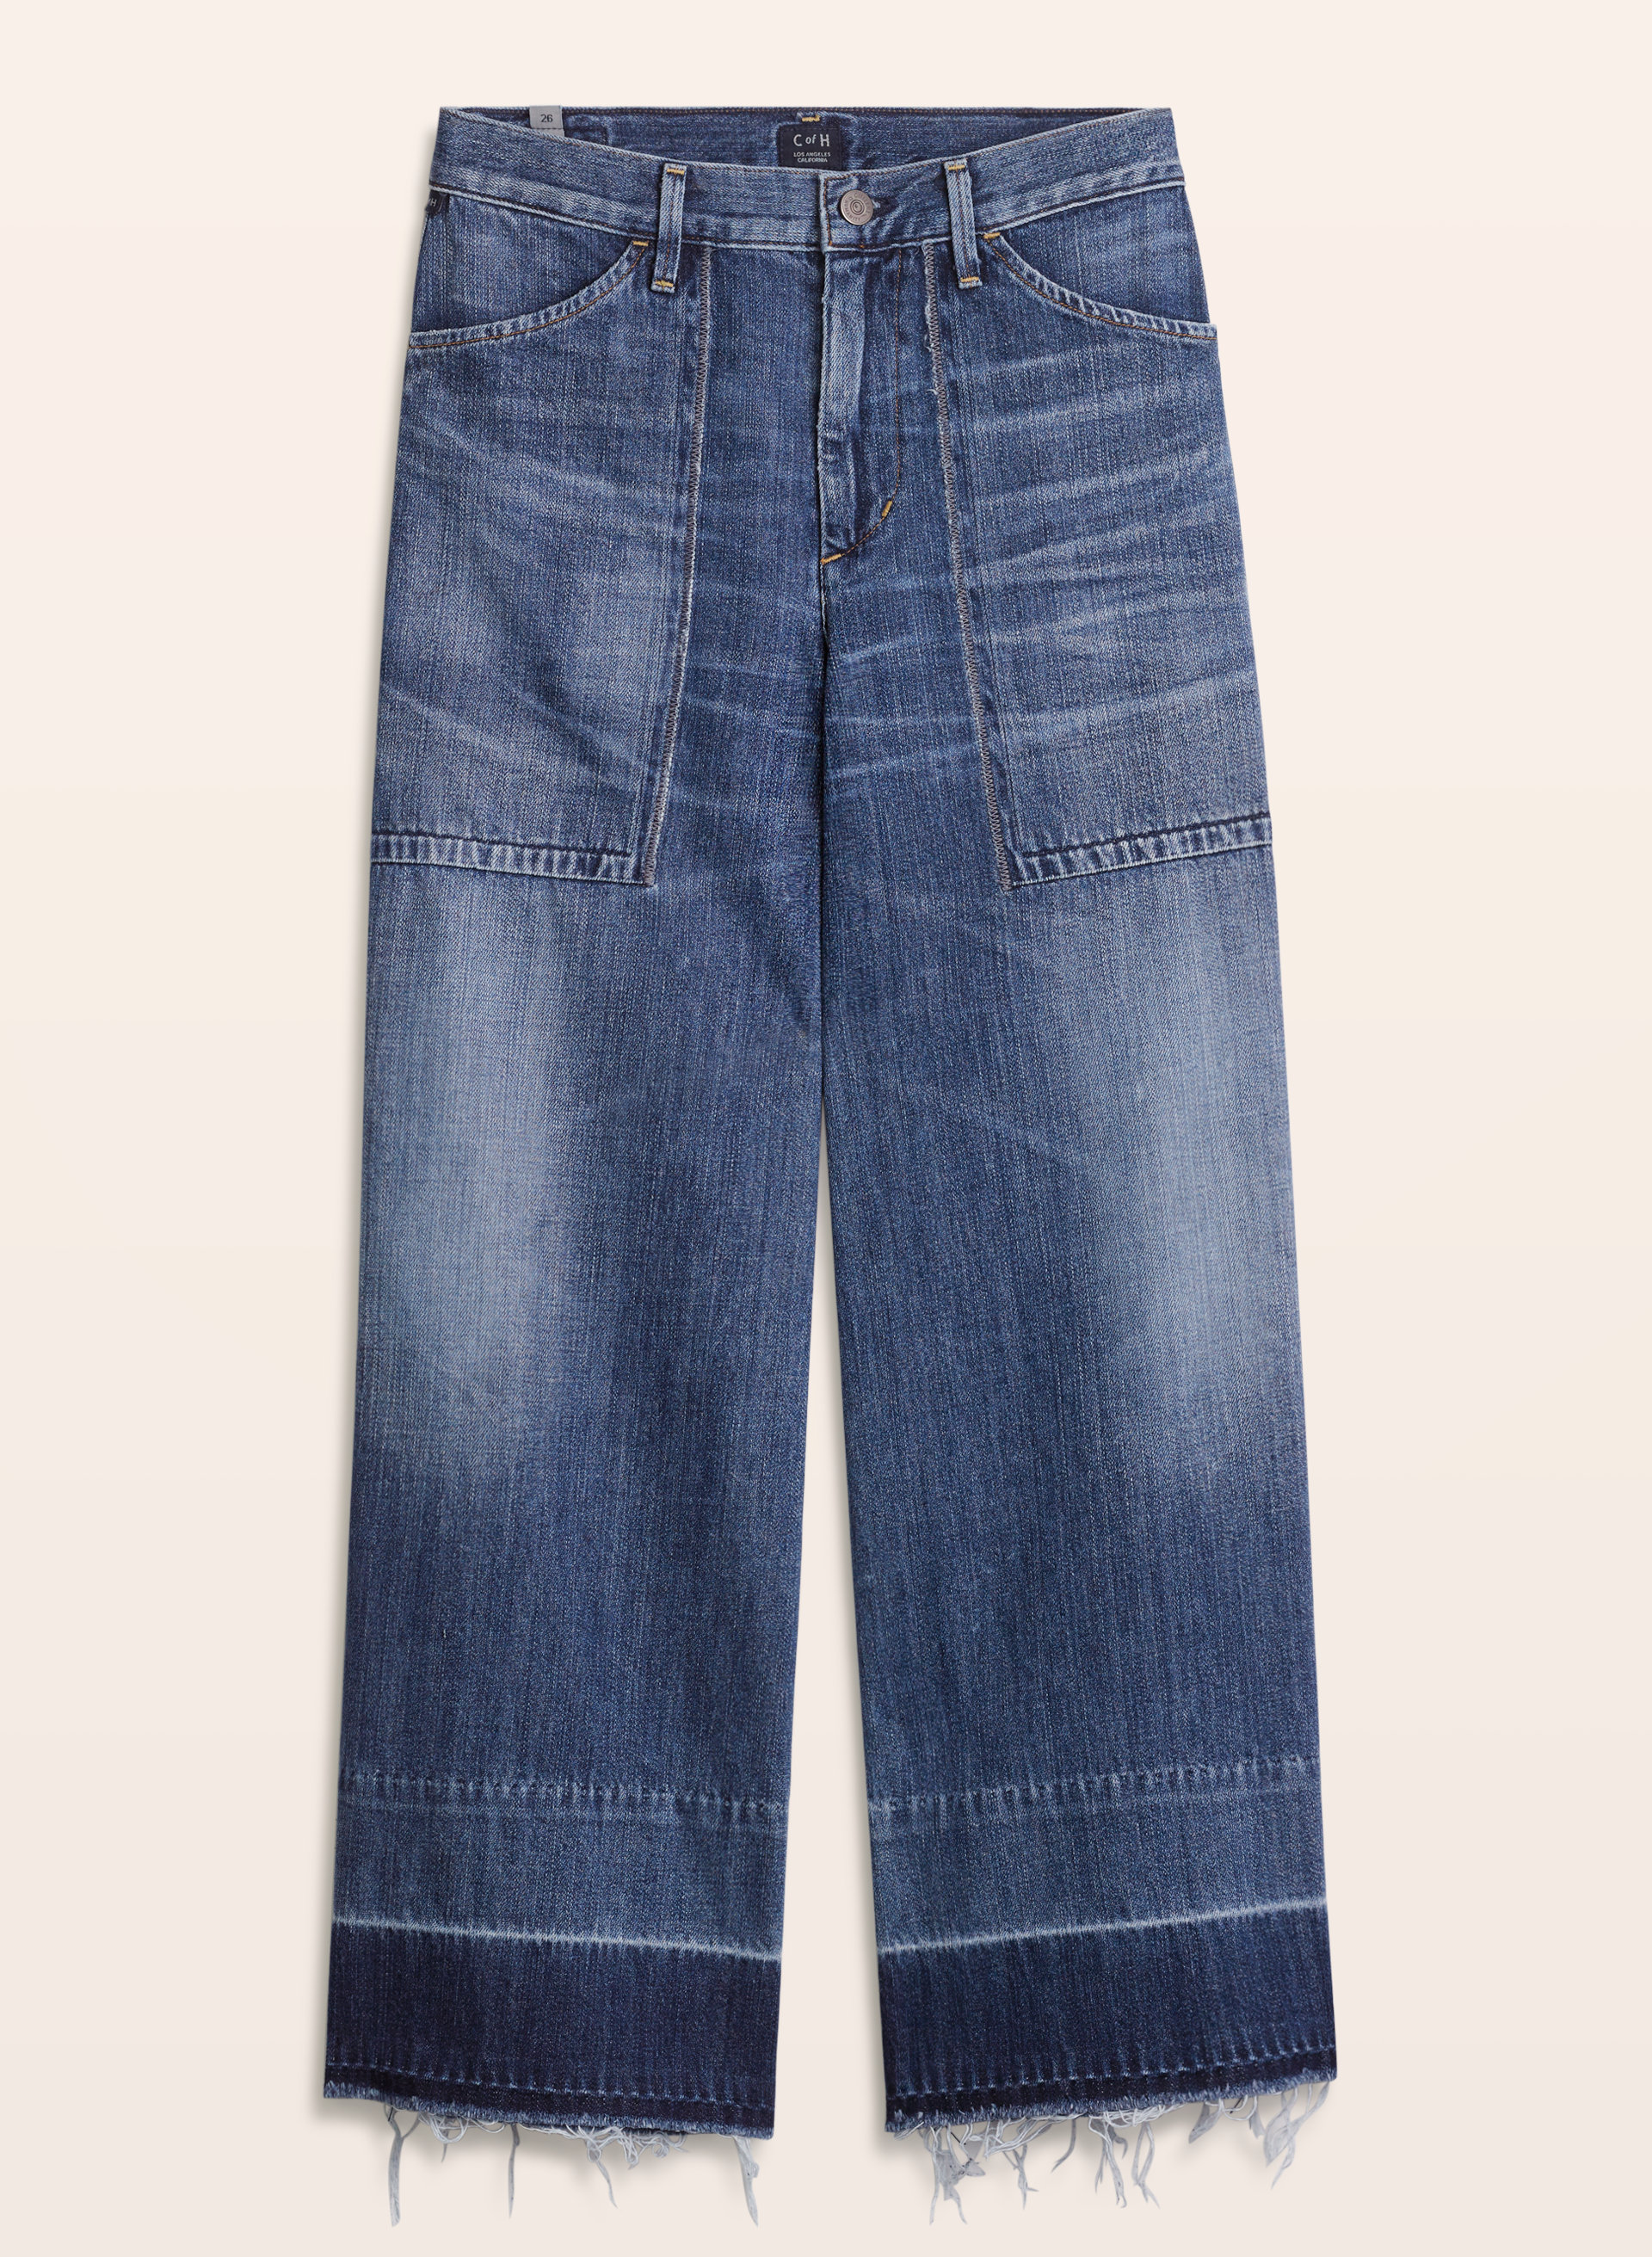 Cropped Flares Are Here to Stay - Racked f7b77a034fa